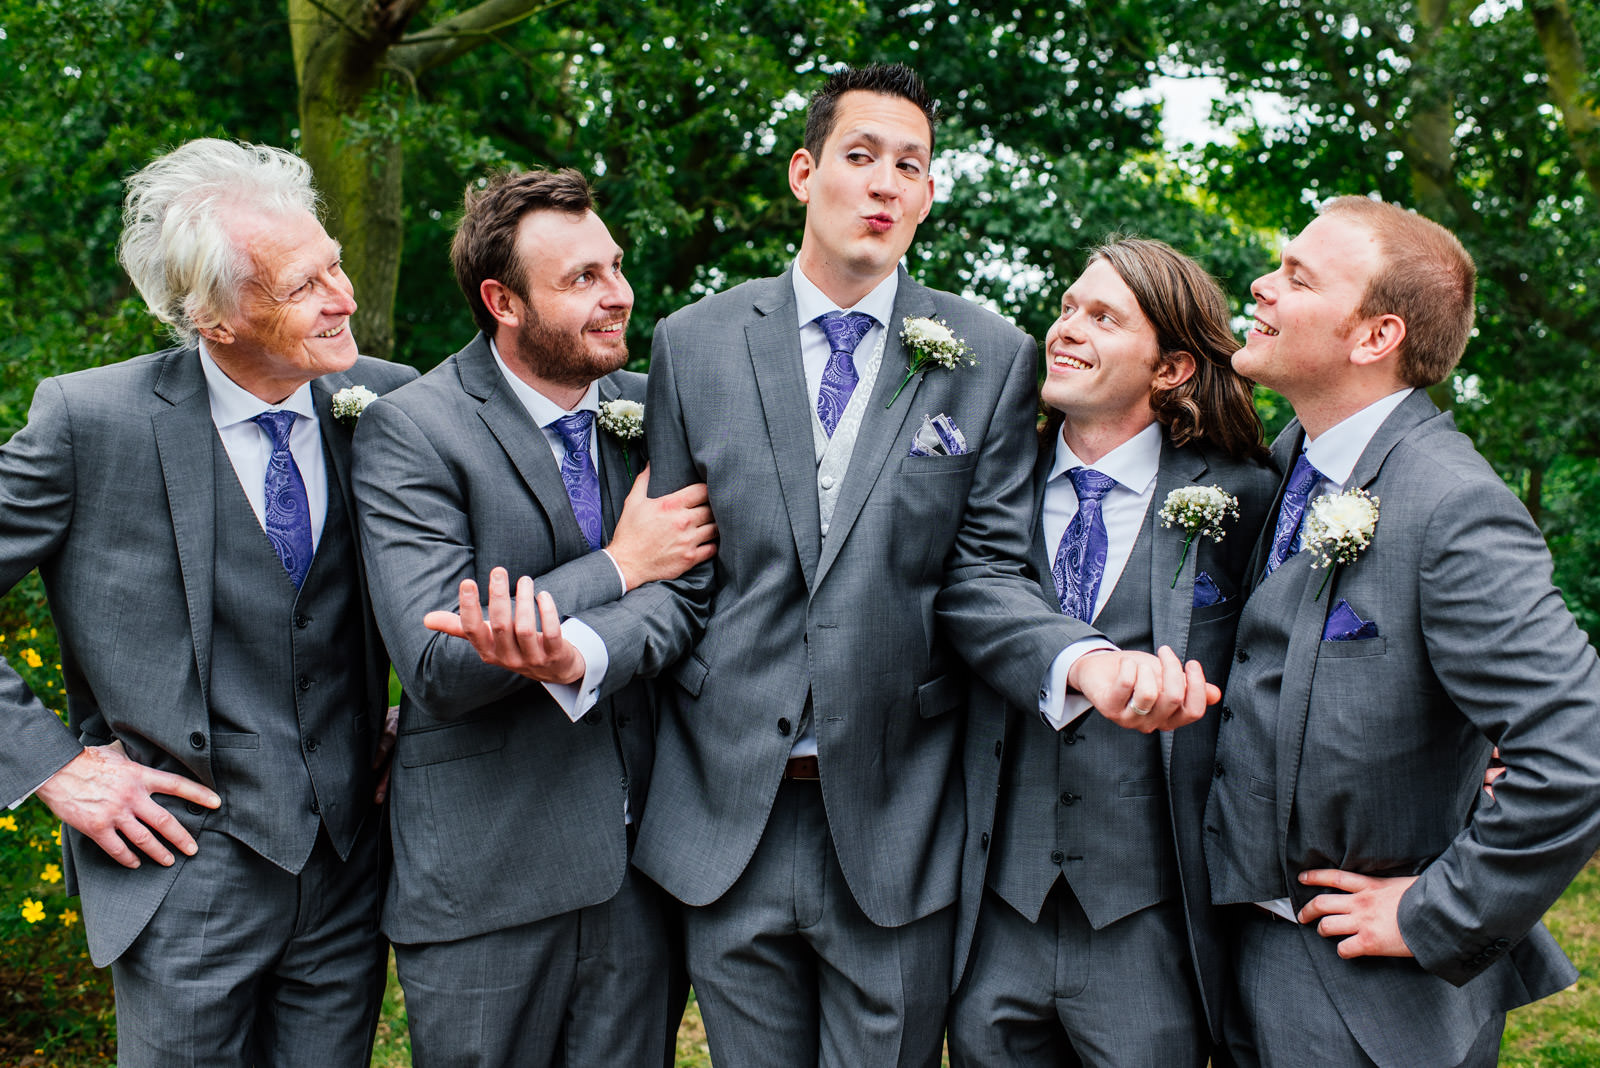 Informal Groomsmen Photo